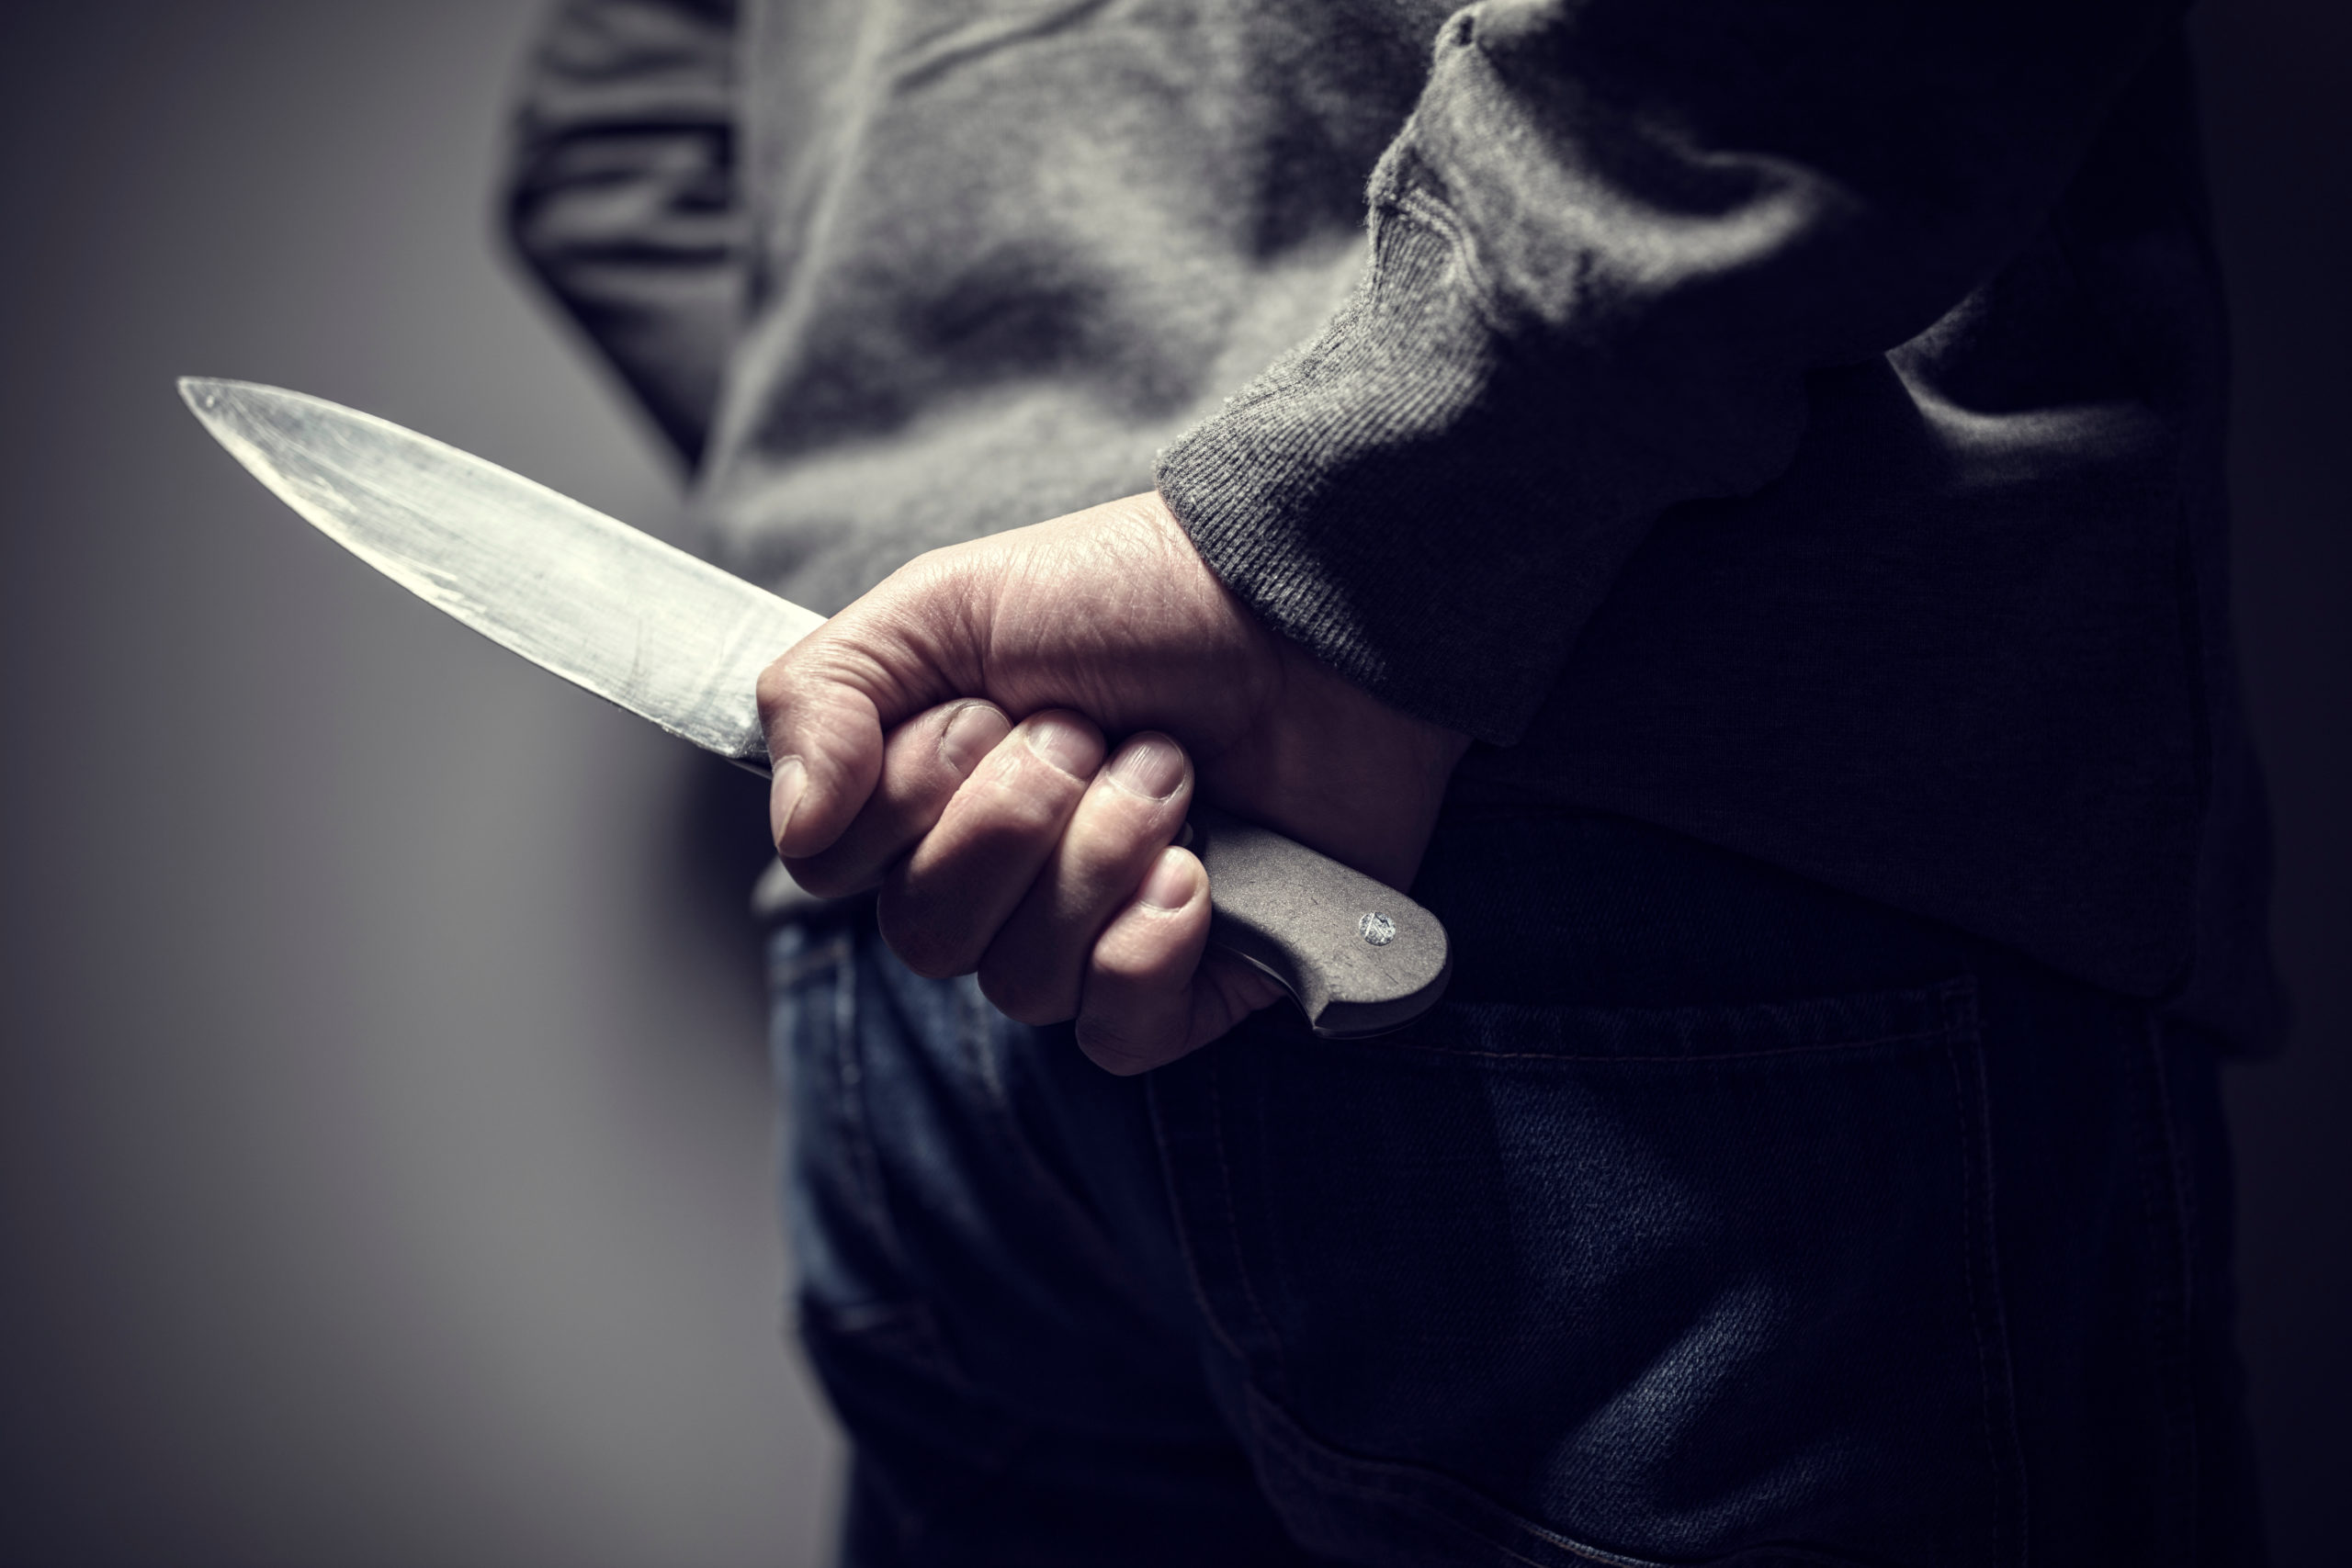 Criminal with knife hidden behind his back (Shutterstock/Brian A Jackson)